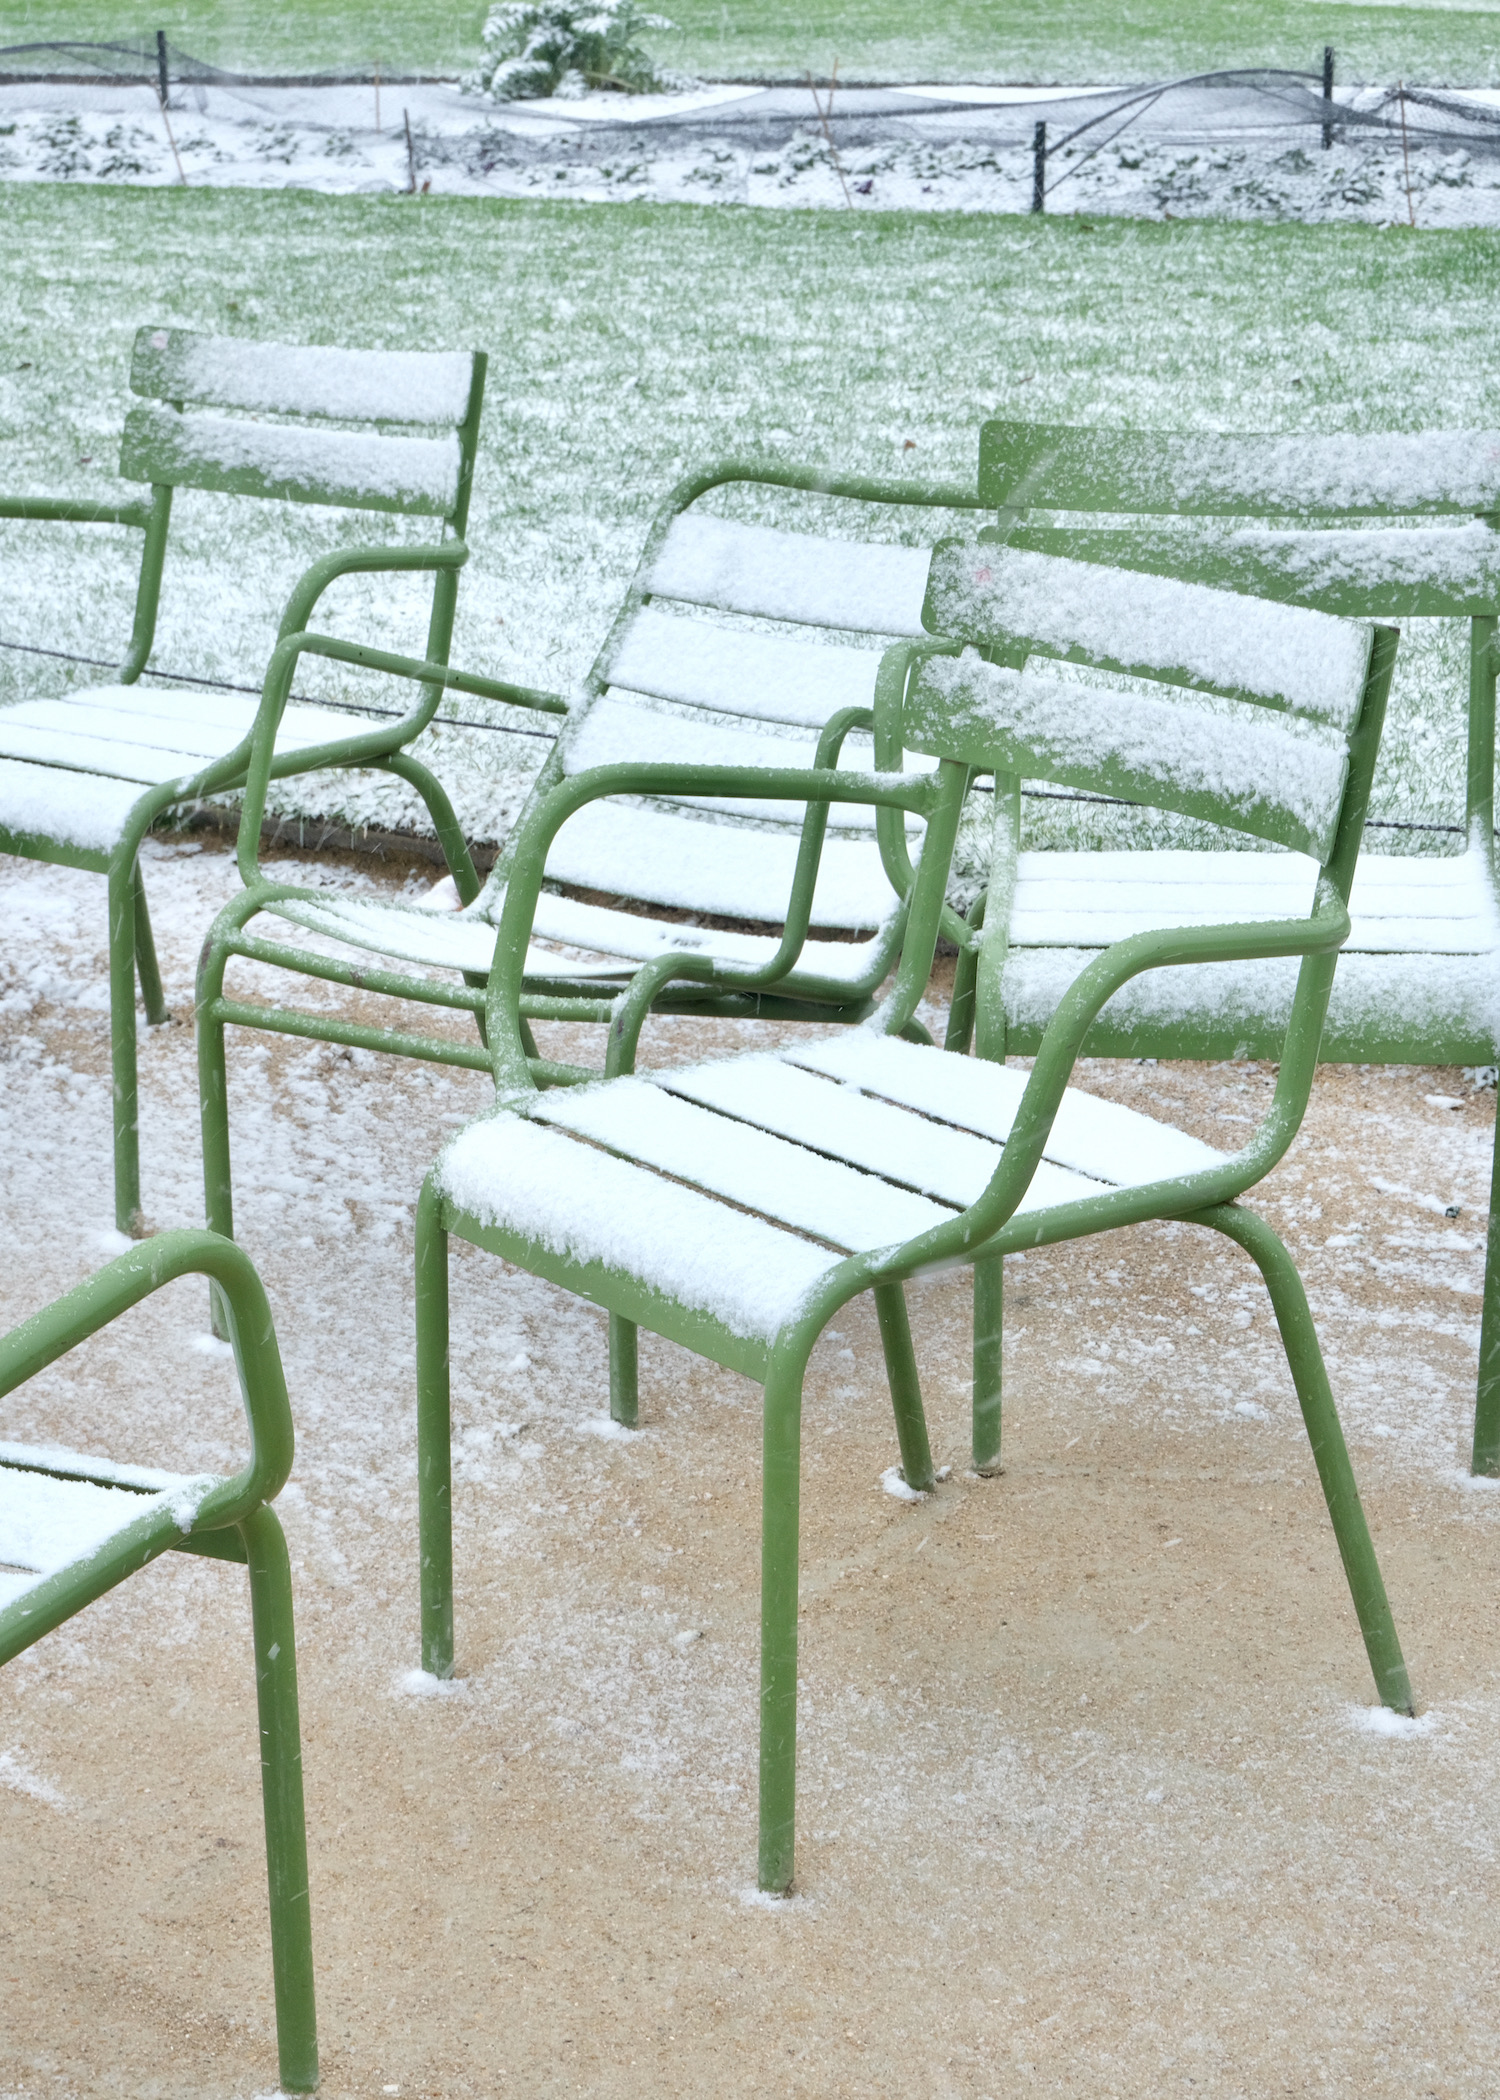 tuileries green chairs snow